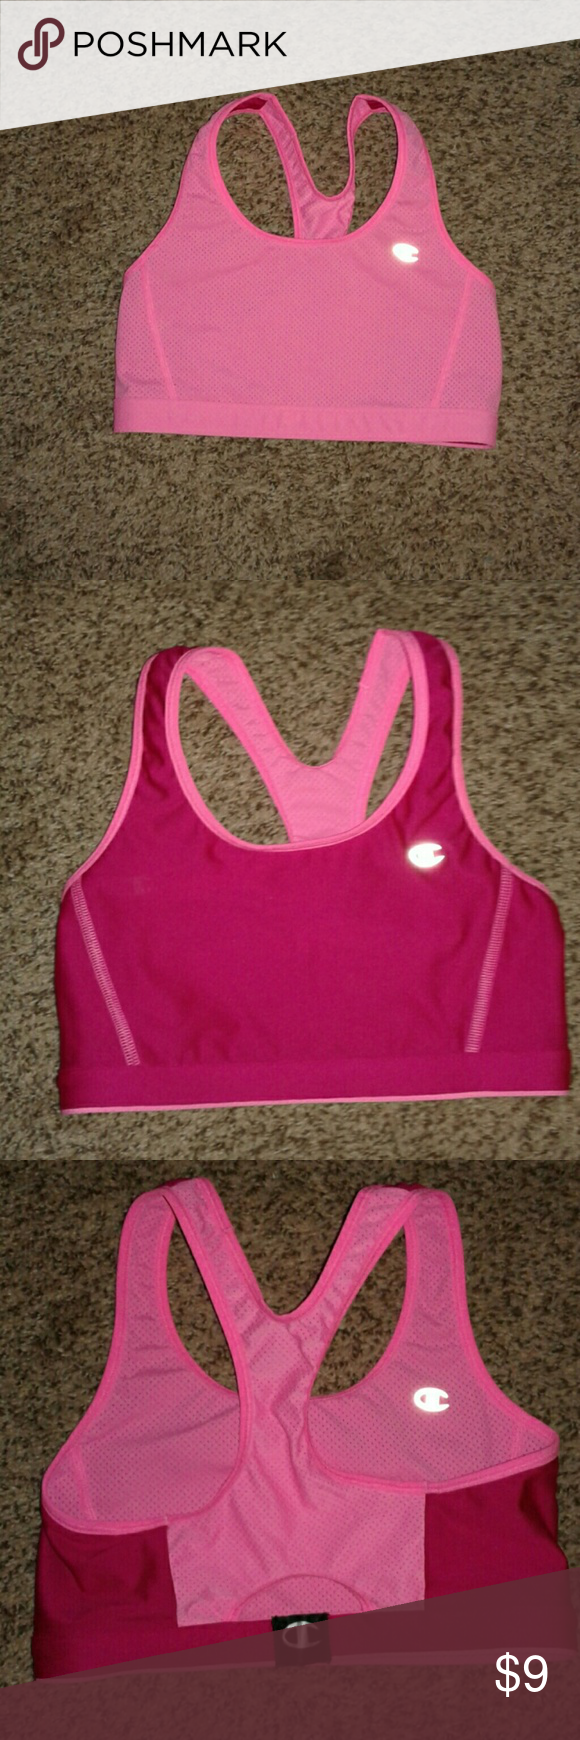 Champion Reversible Sports Bra Like new Champion Other